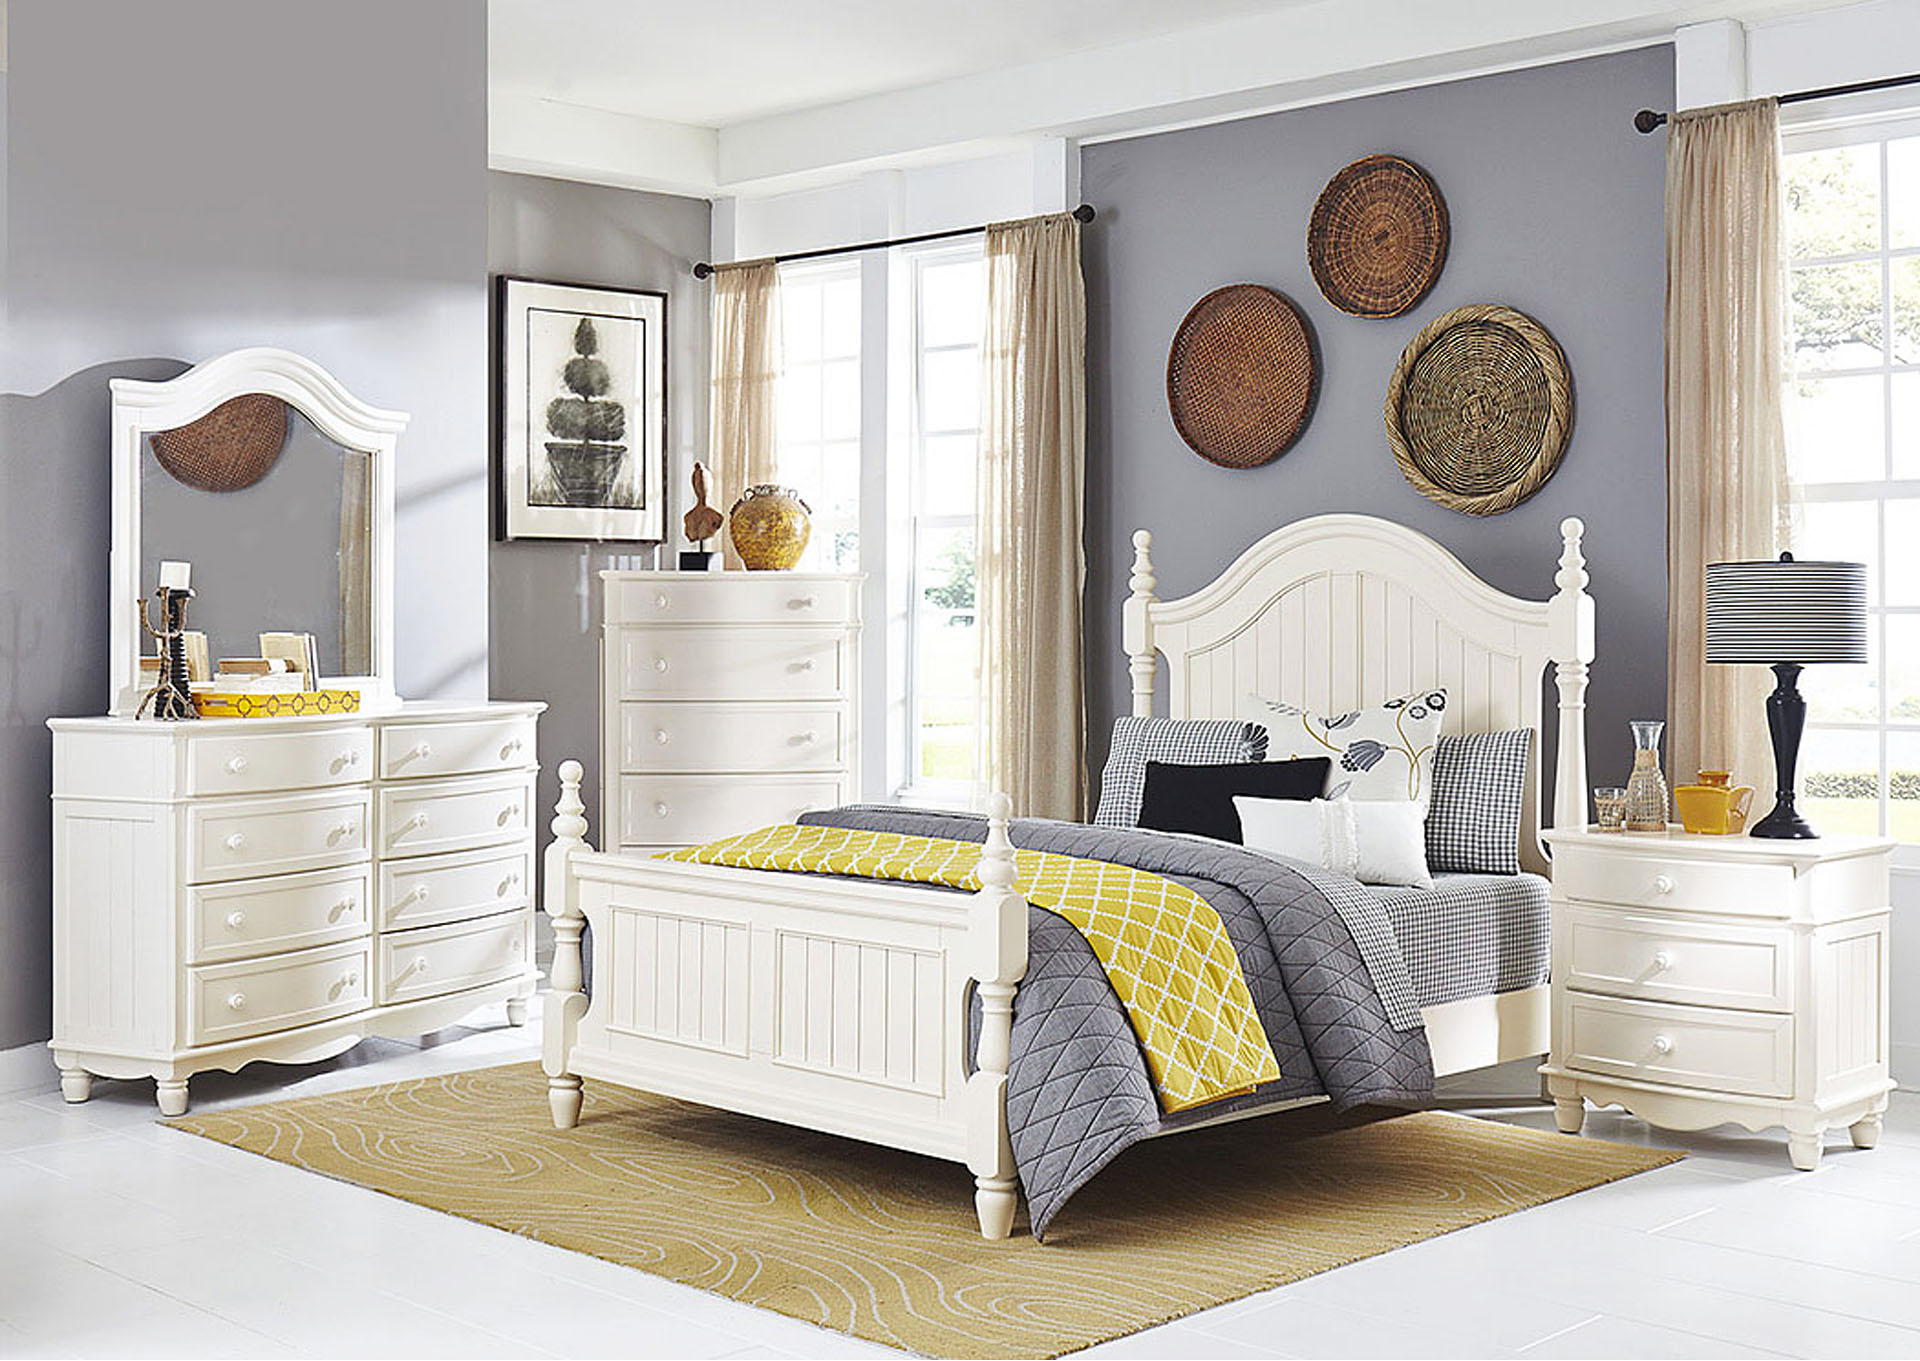 Clementine White Drawer Chest,Homelegance